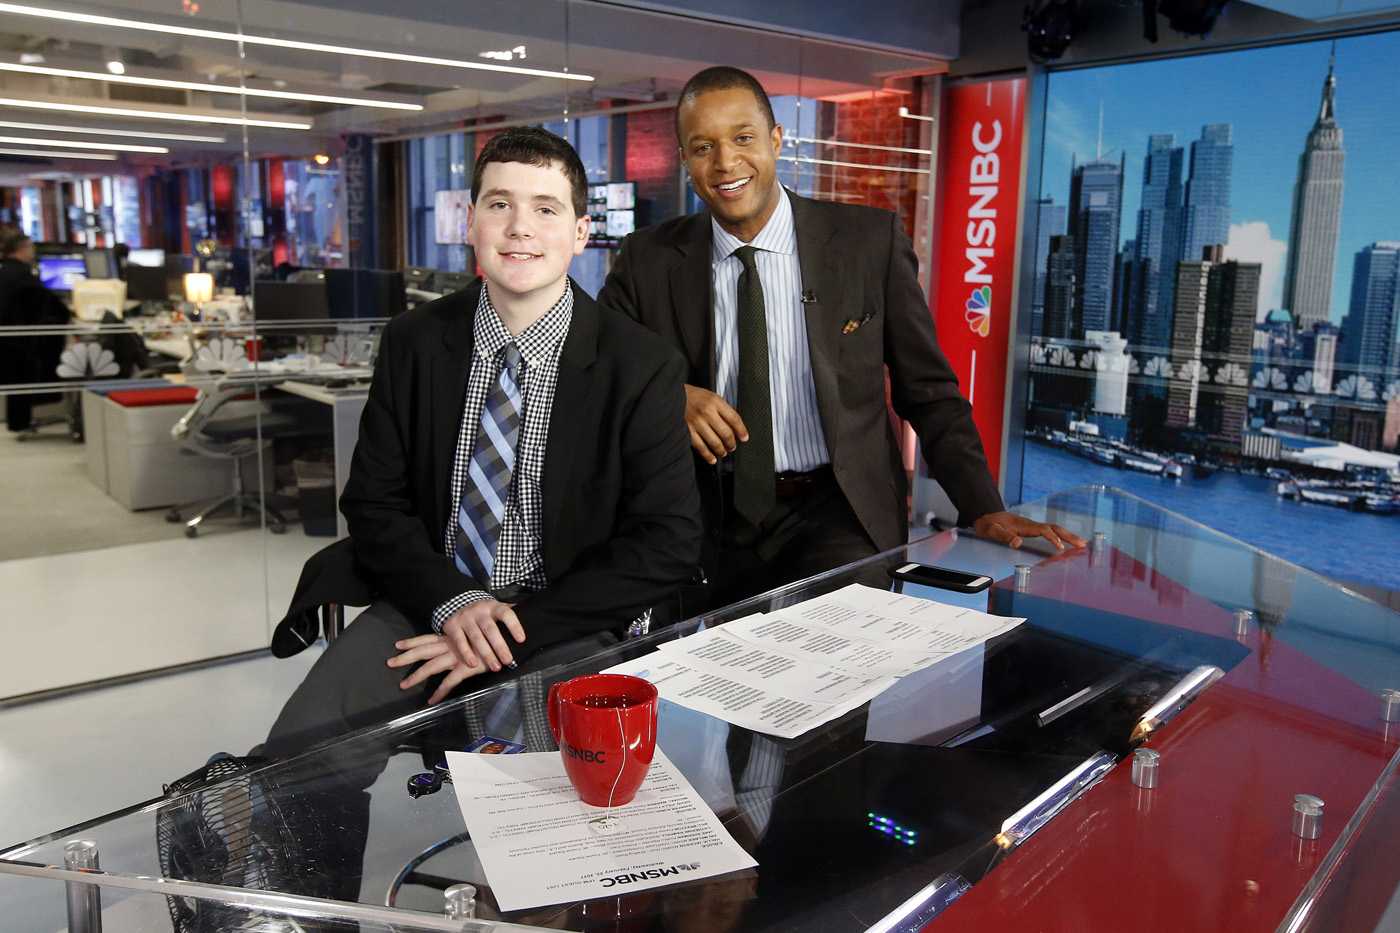 John Gabalski (left) and Craig Melvin in the MSNBC studio in New York City, February 22. Photo provided by National 4-H Council.